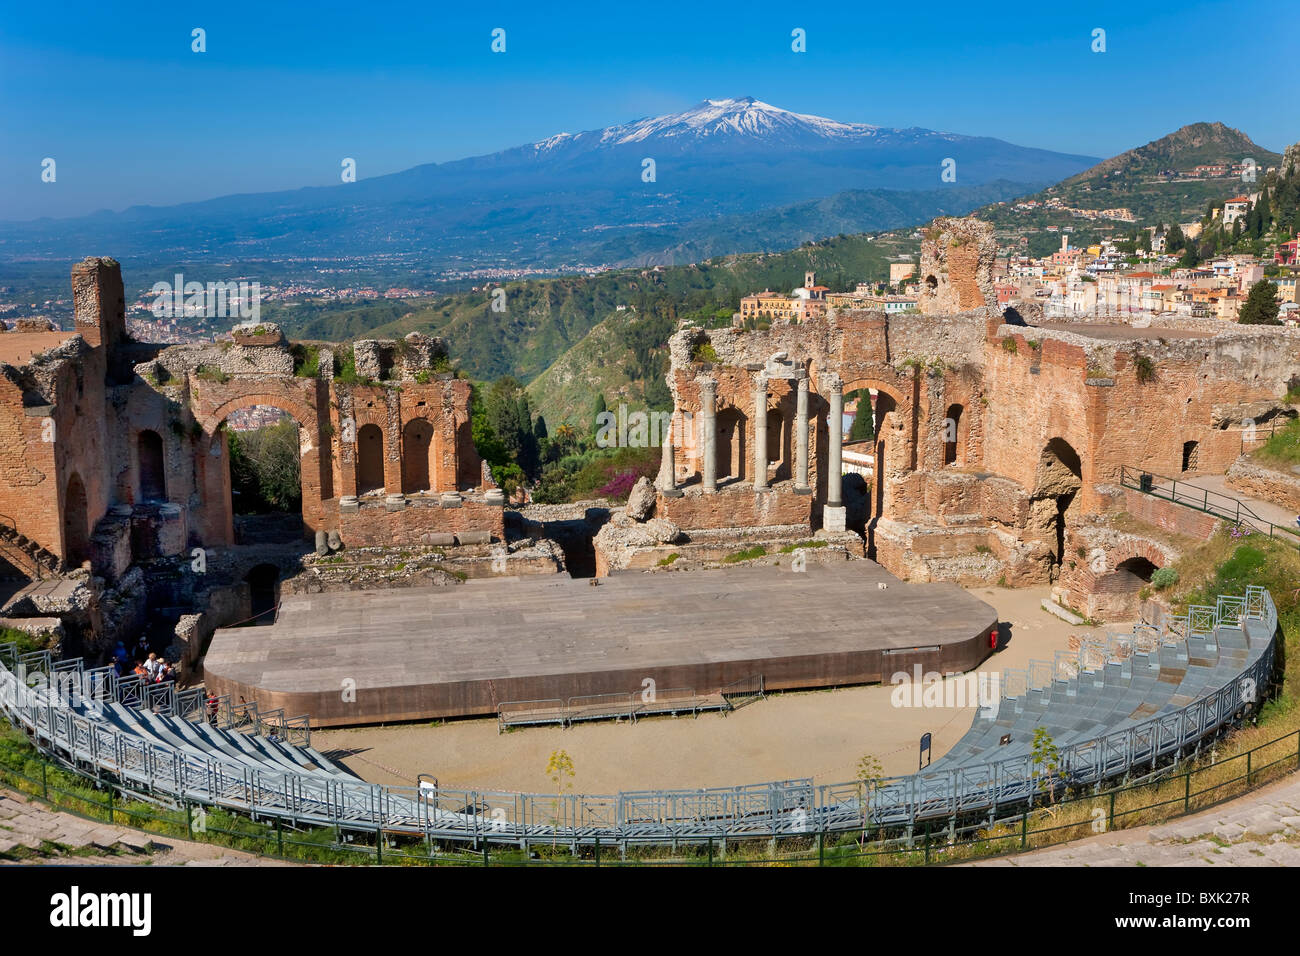 The Greek theatre and Mount Etna, Taormina, Sicily, Italy - Stock Image